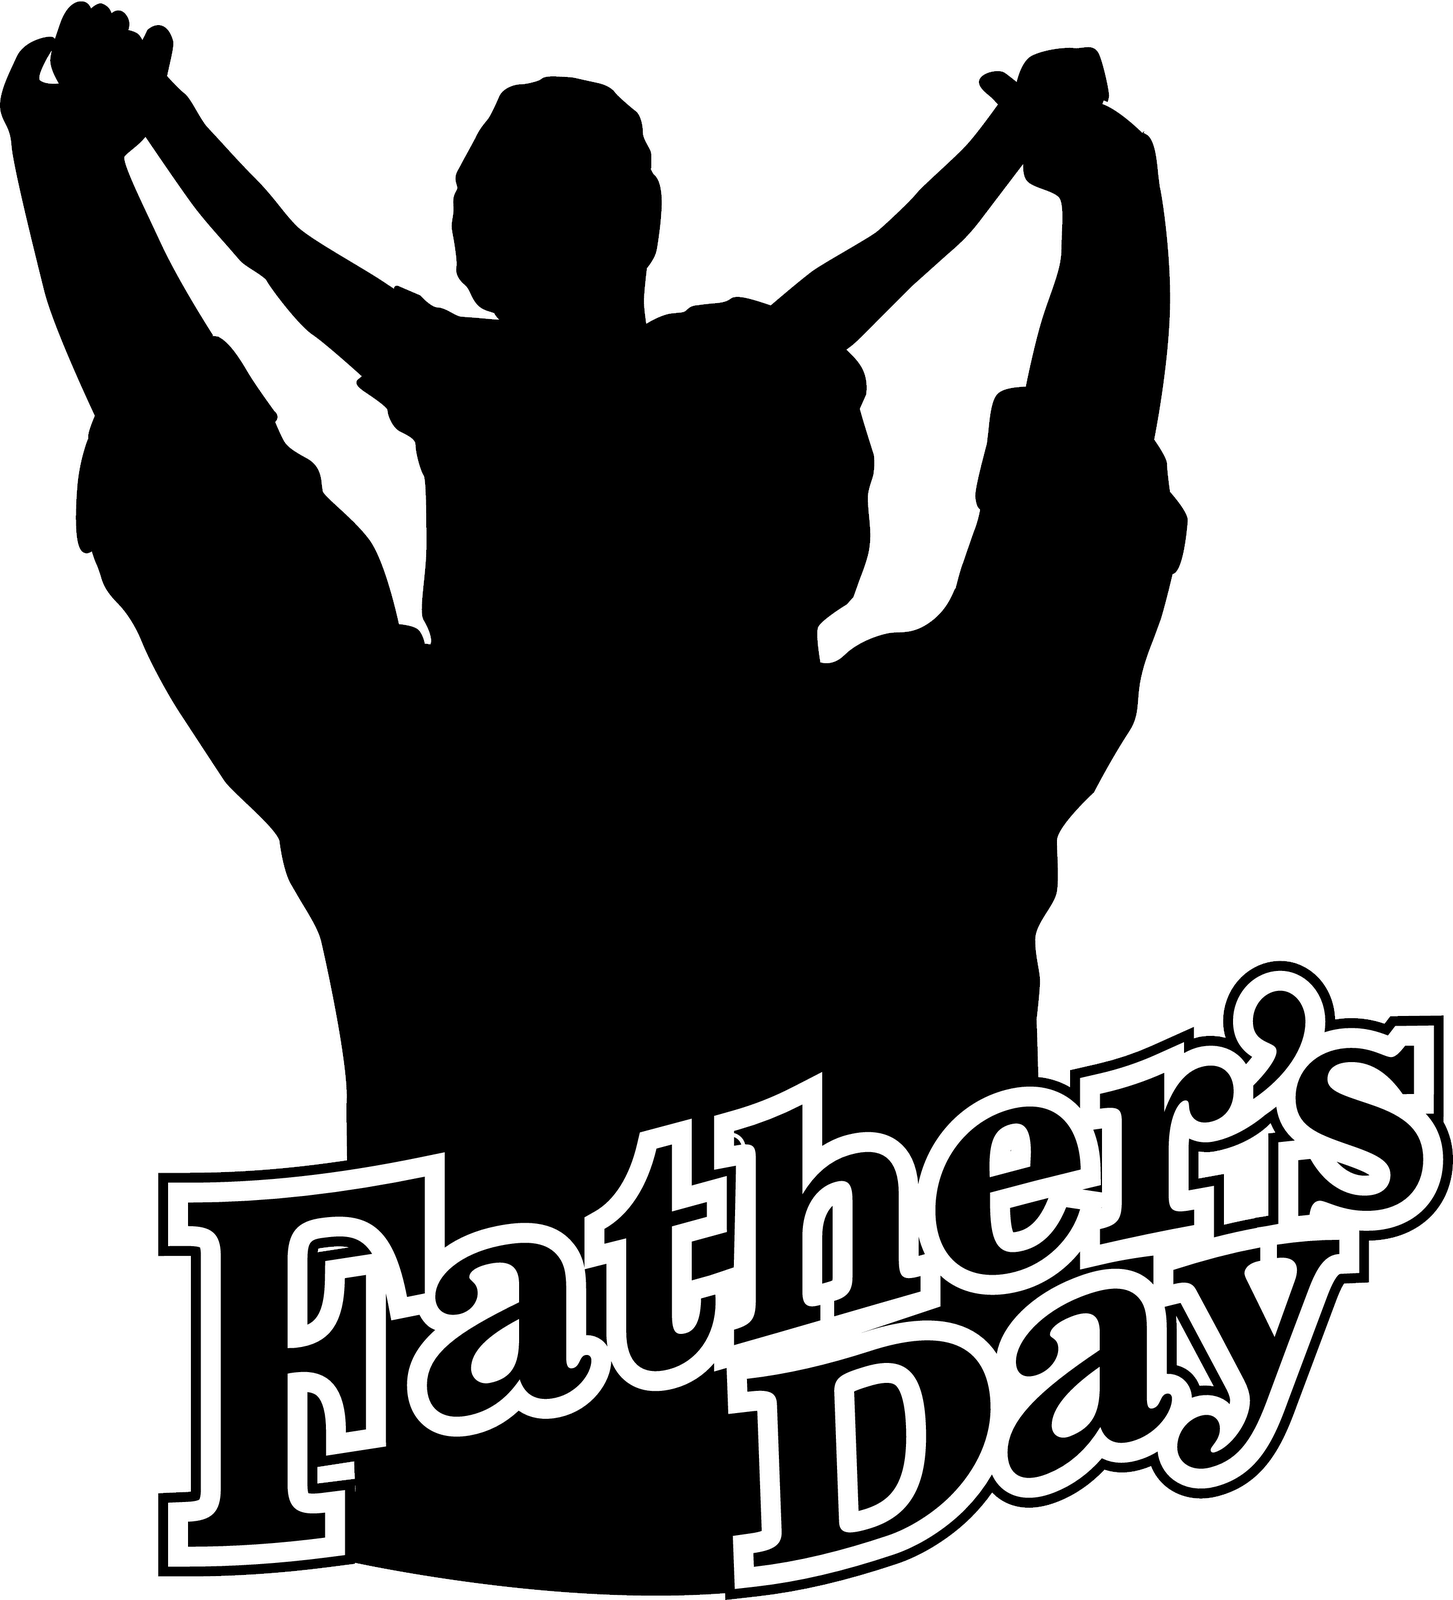 hight resolution of dishwasher father s day clip art